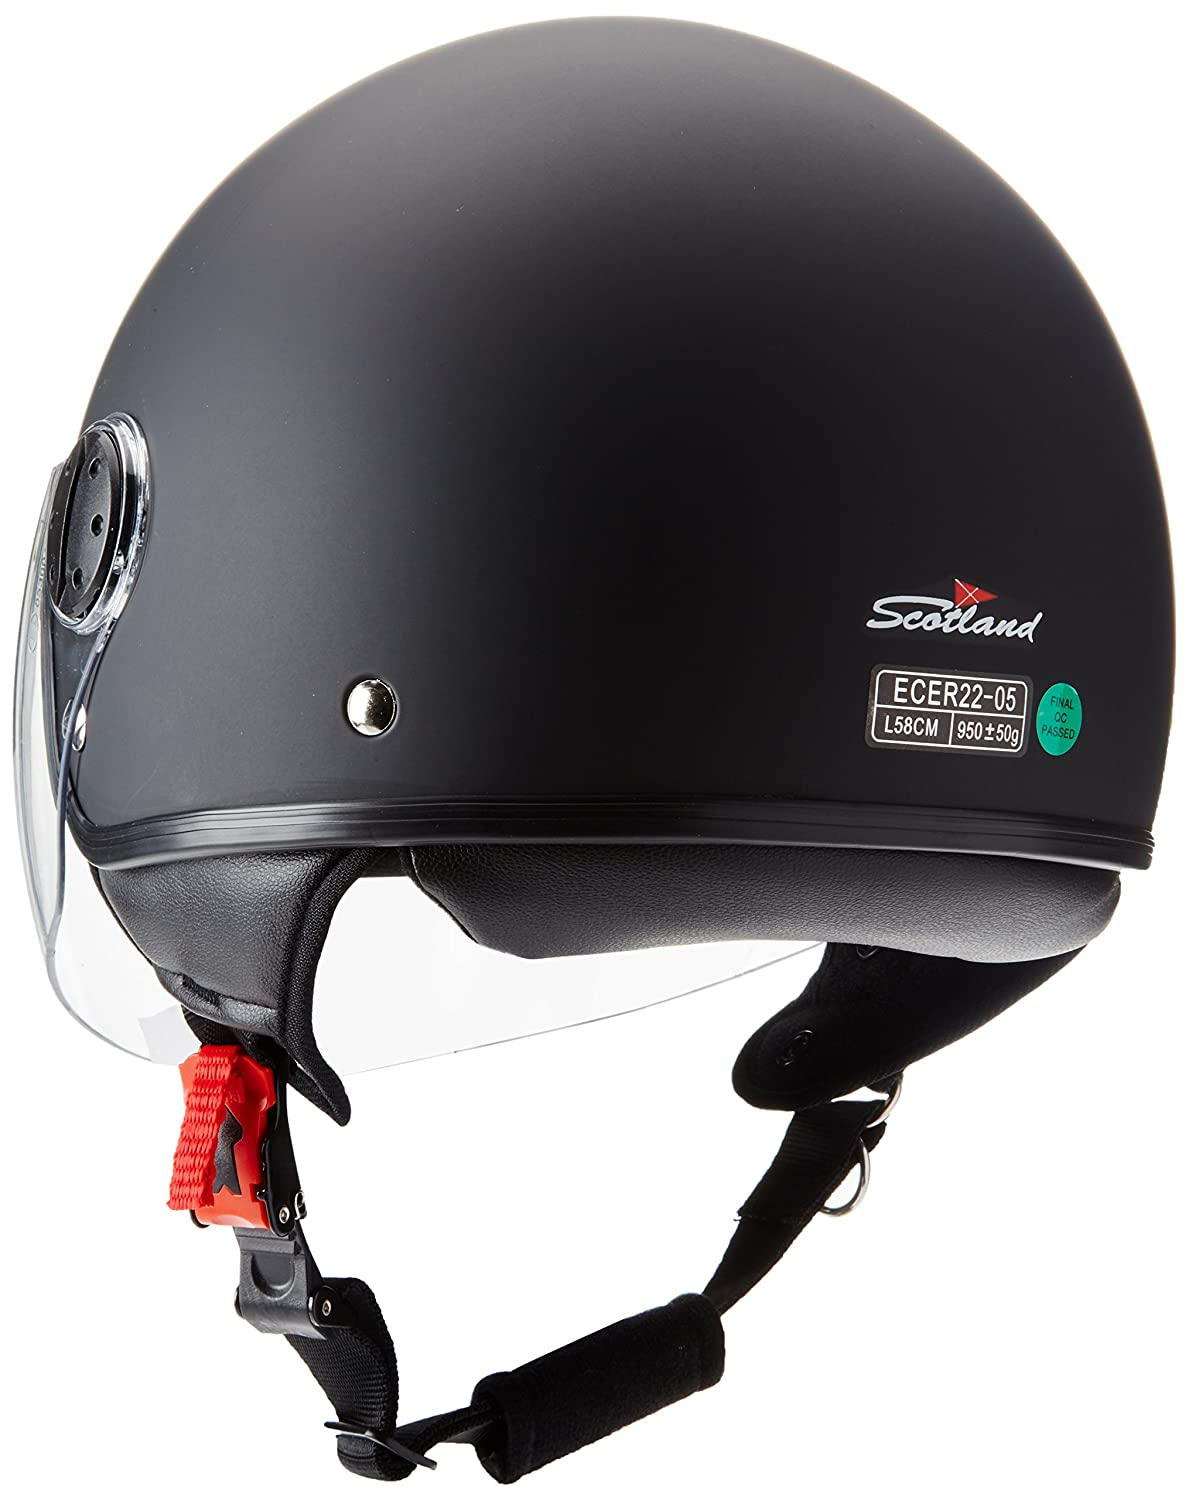 Taglia XL Nero Opaco Scotland 100041flash Casco Moto